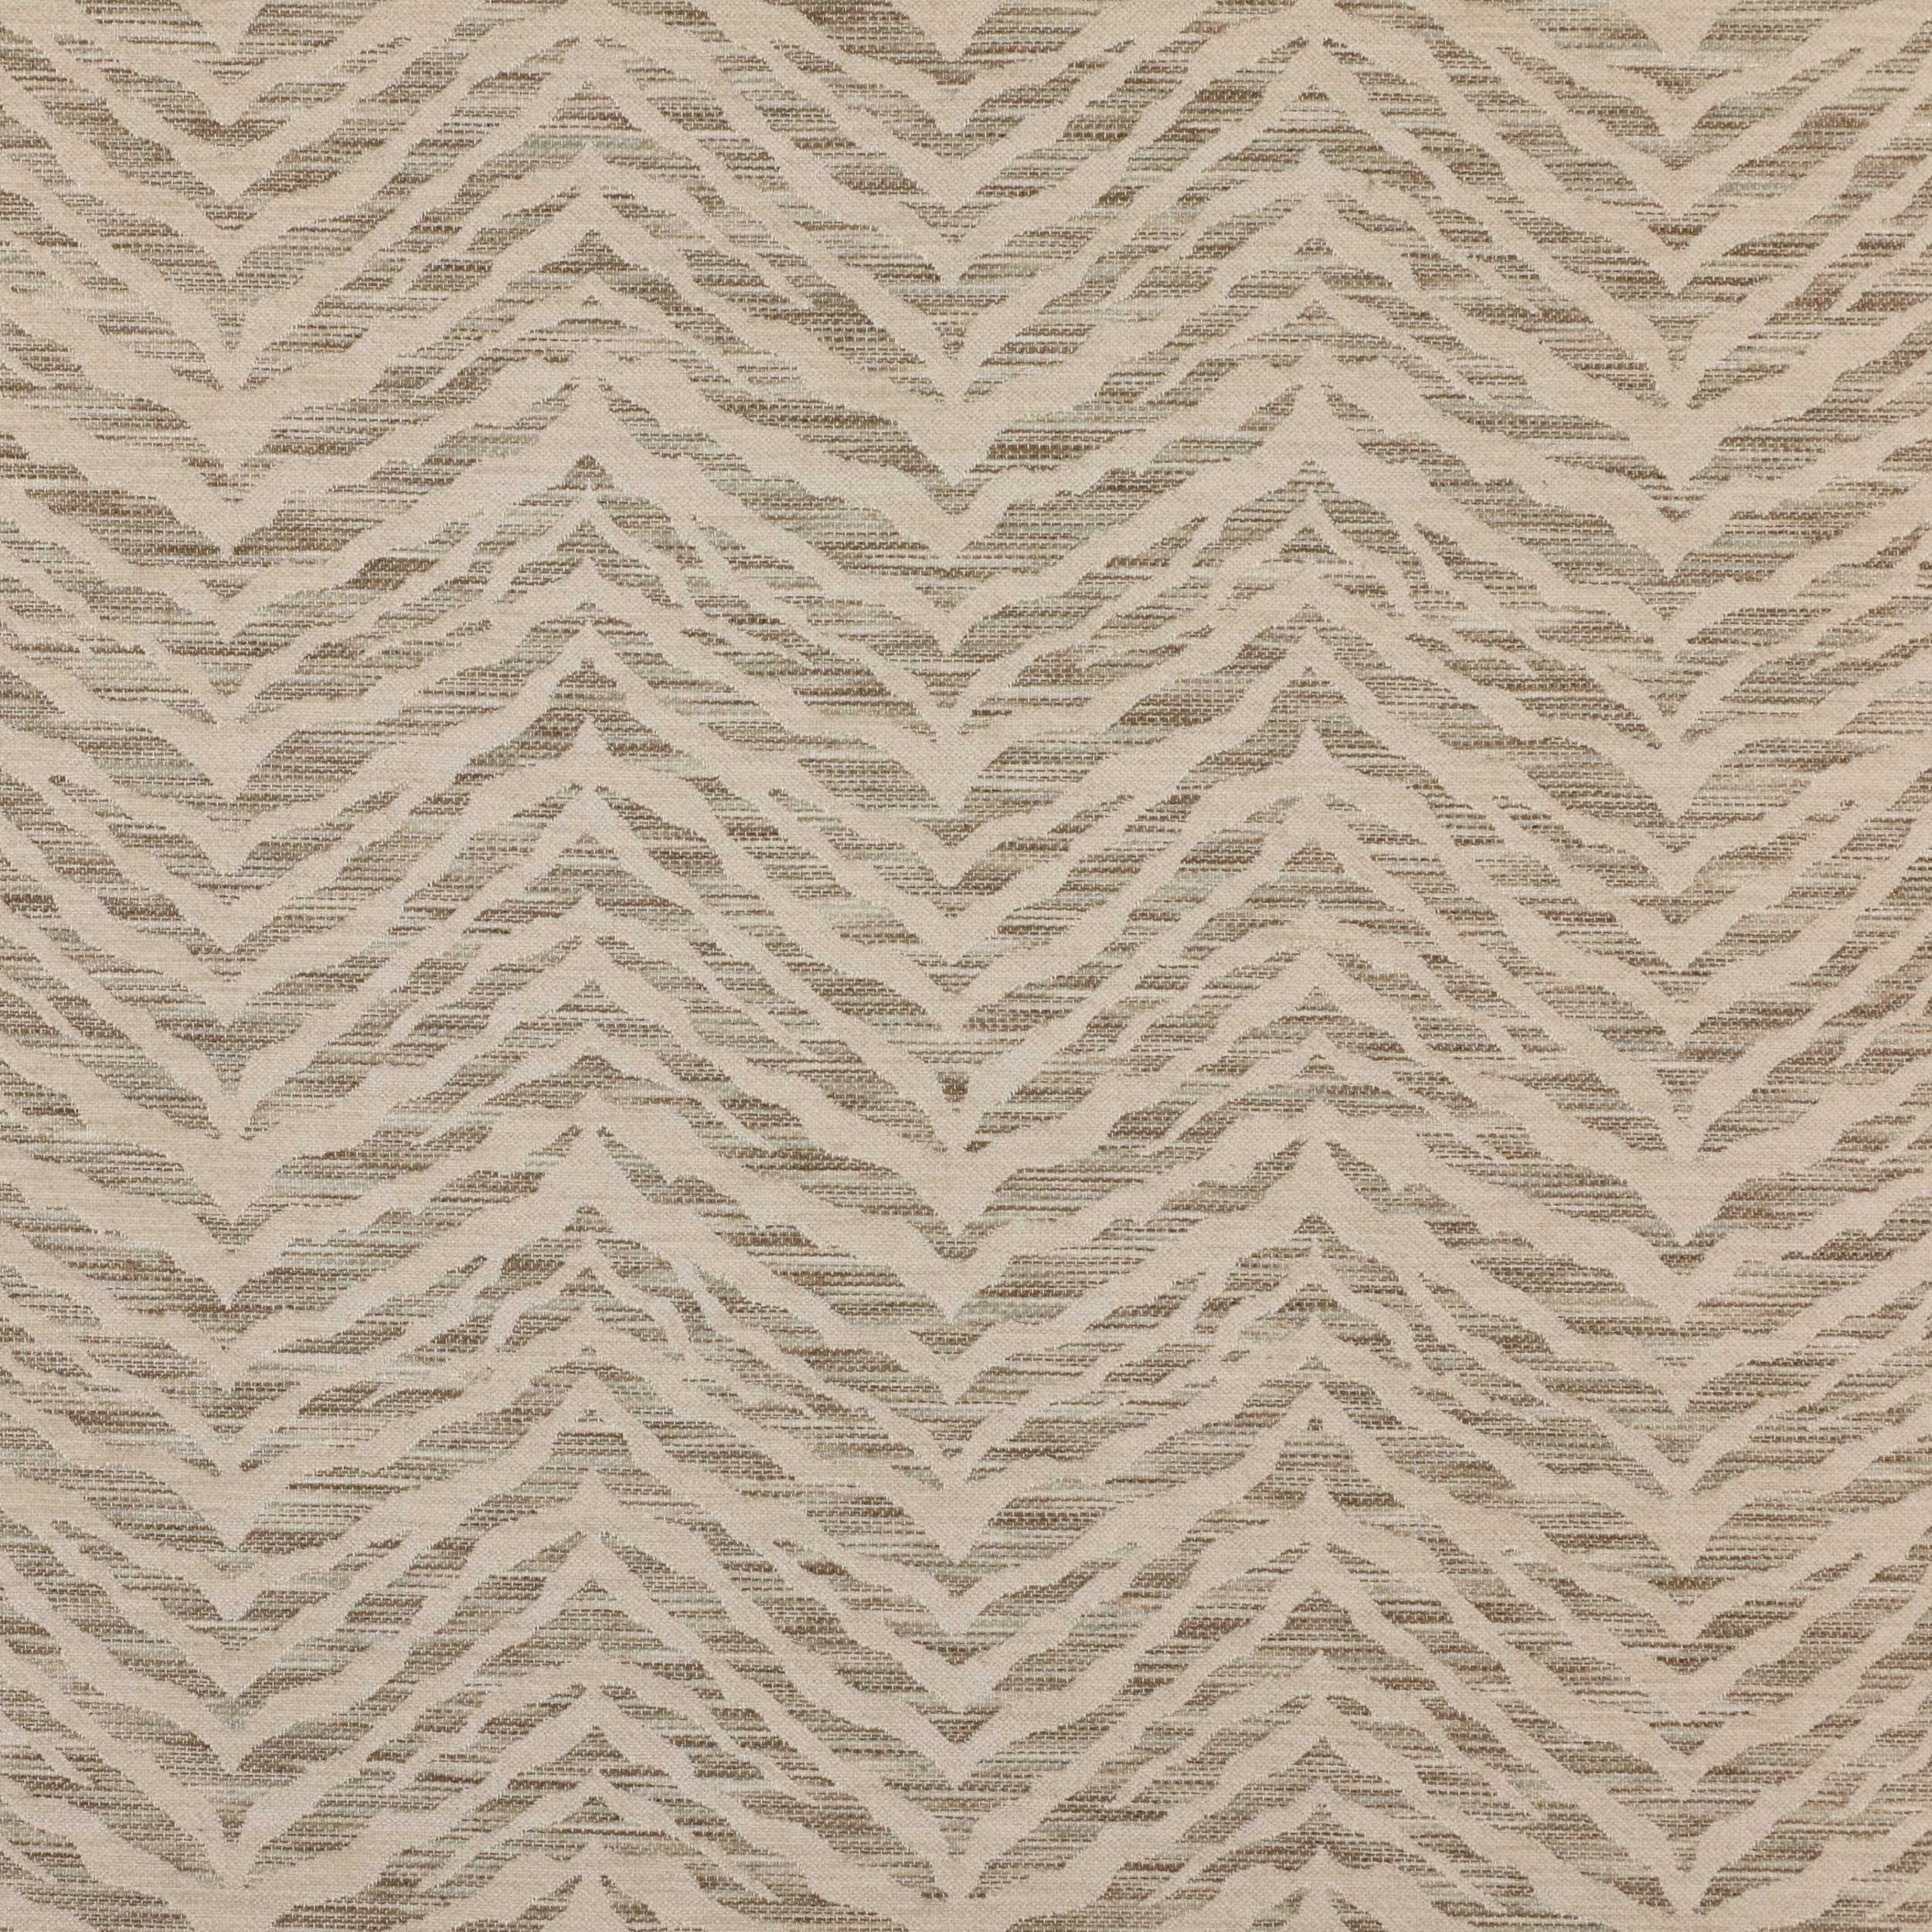 Colefax And Fowler's Kruger F4023-01 natural